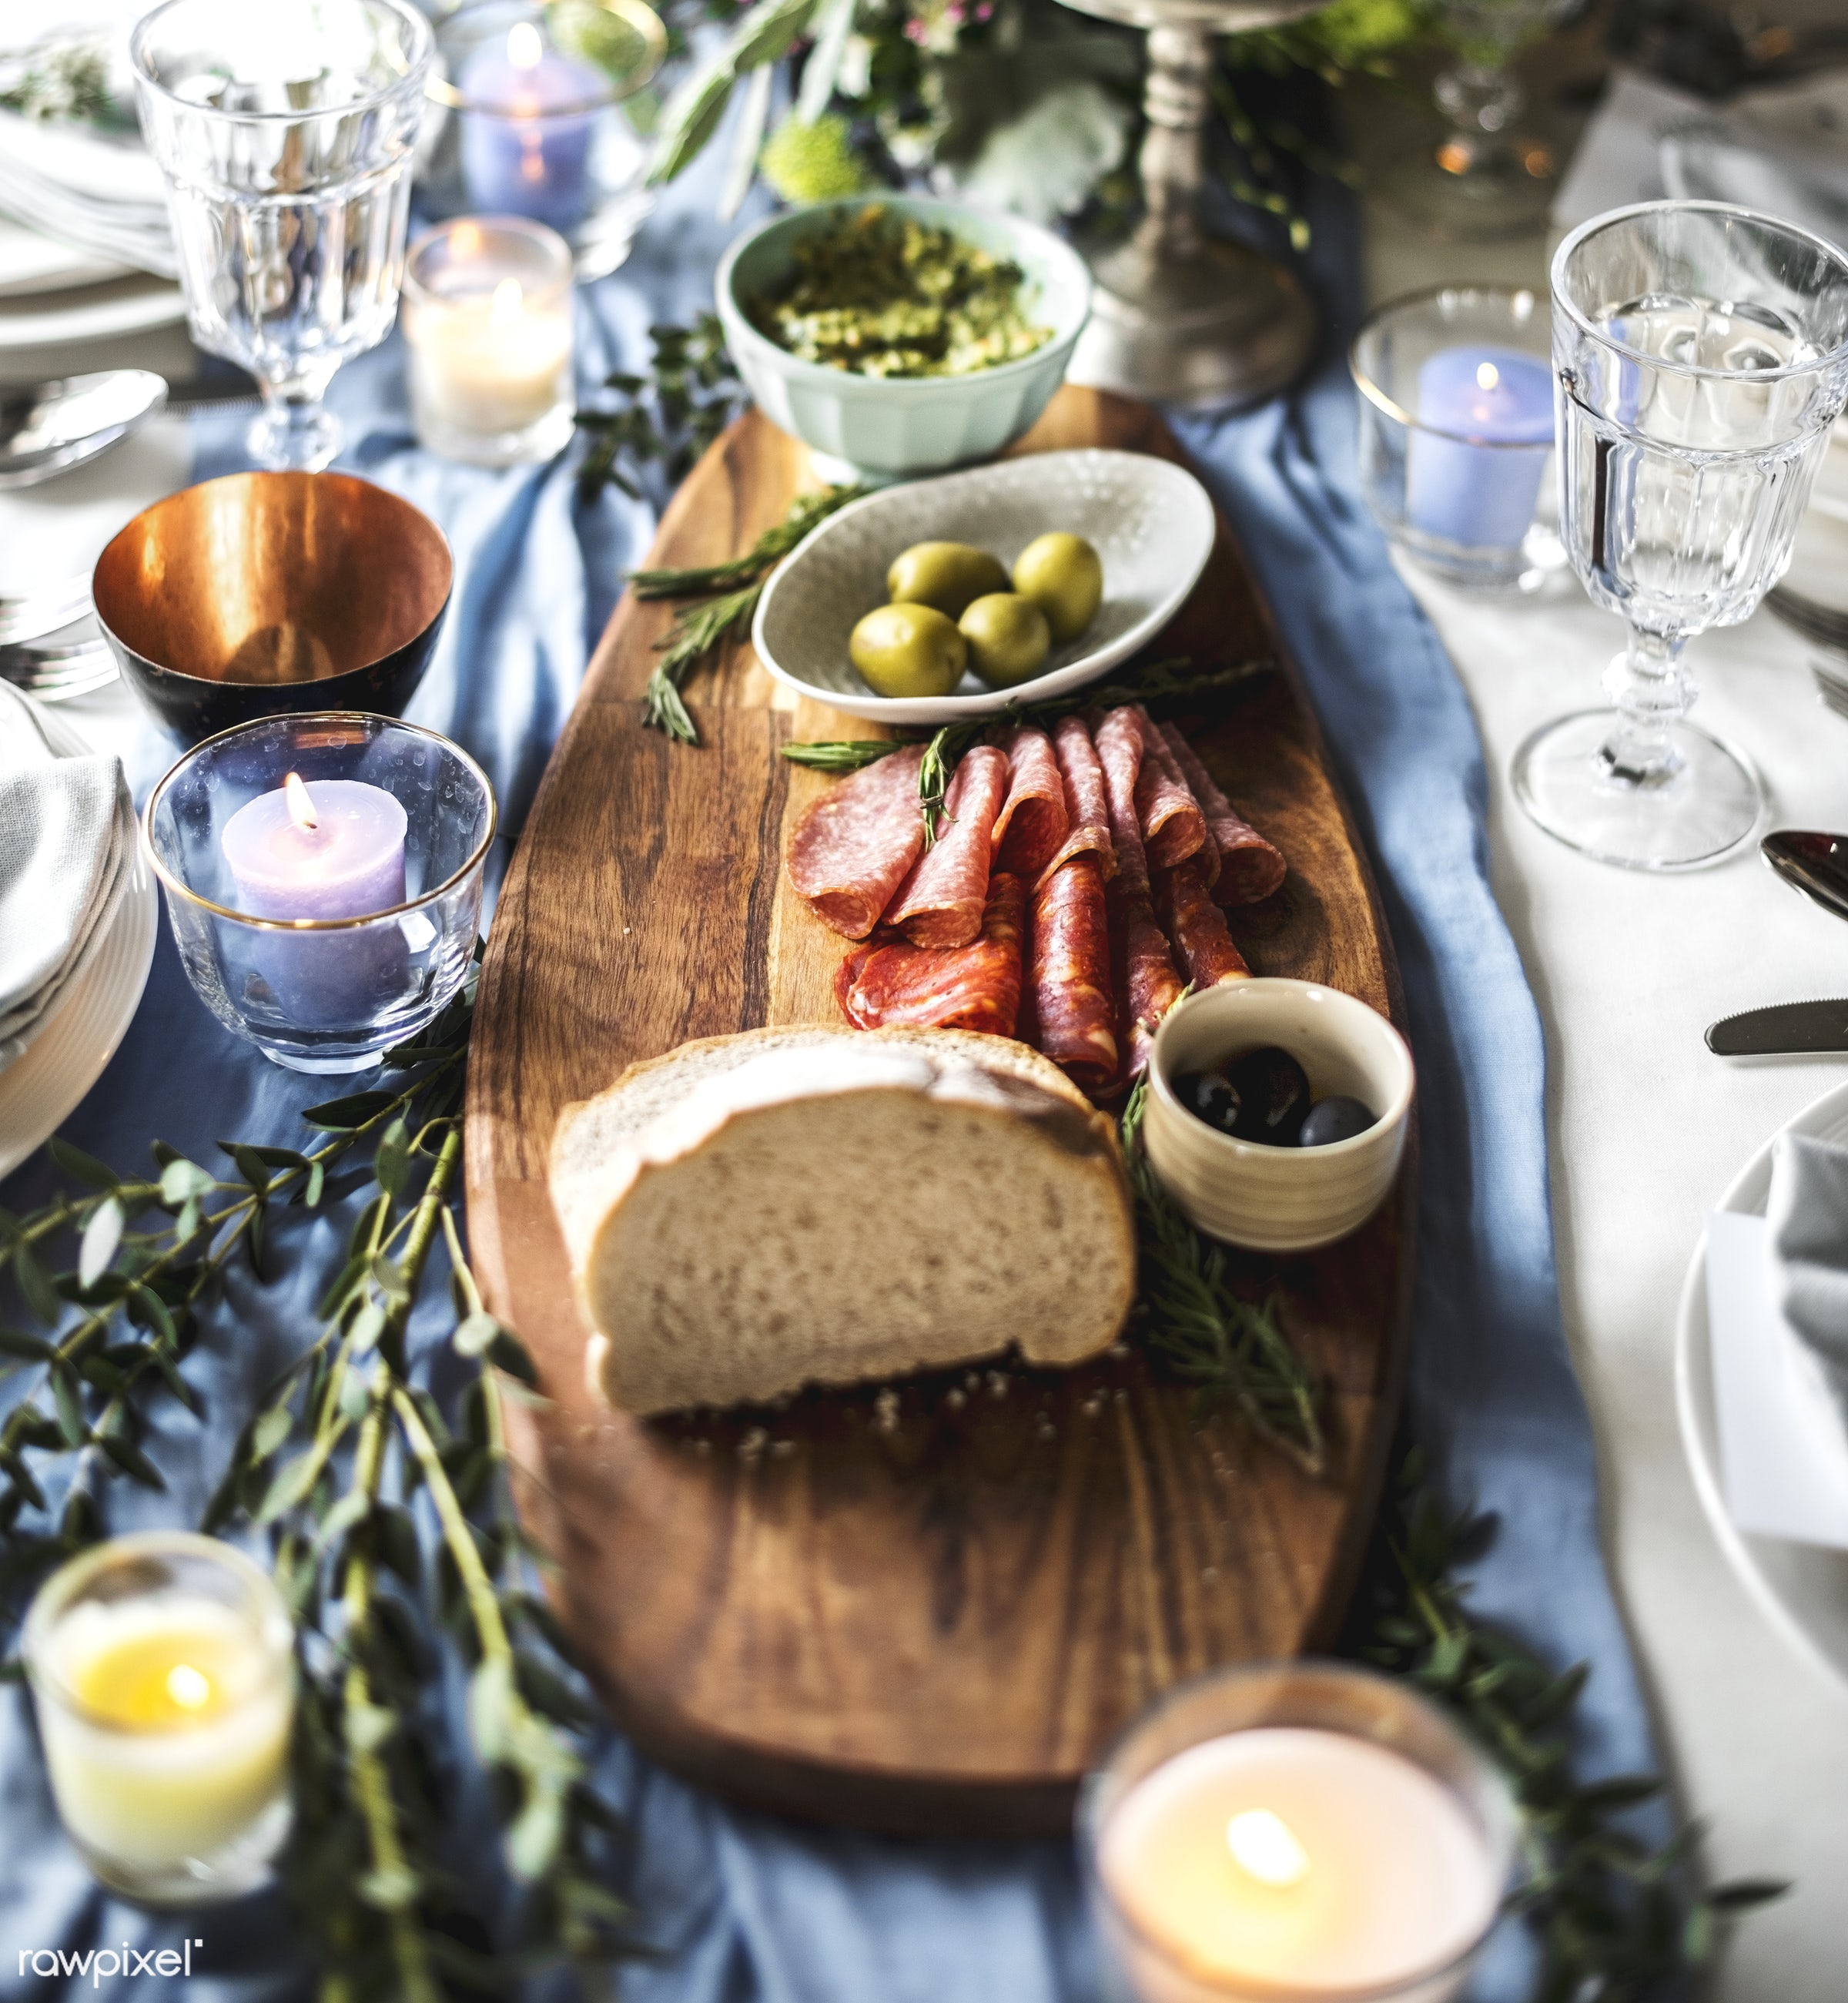 ham, nobody, blue cloth, detail, cutlery, appetizer, party, restaurant, bread, banquet, olives, meal, decoration, table...